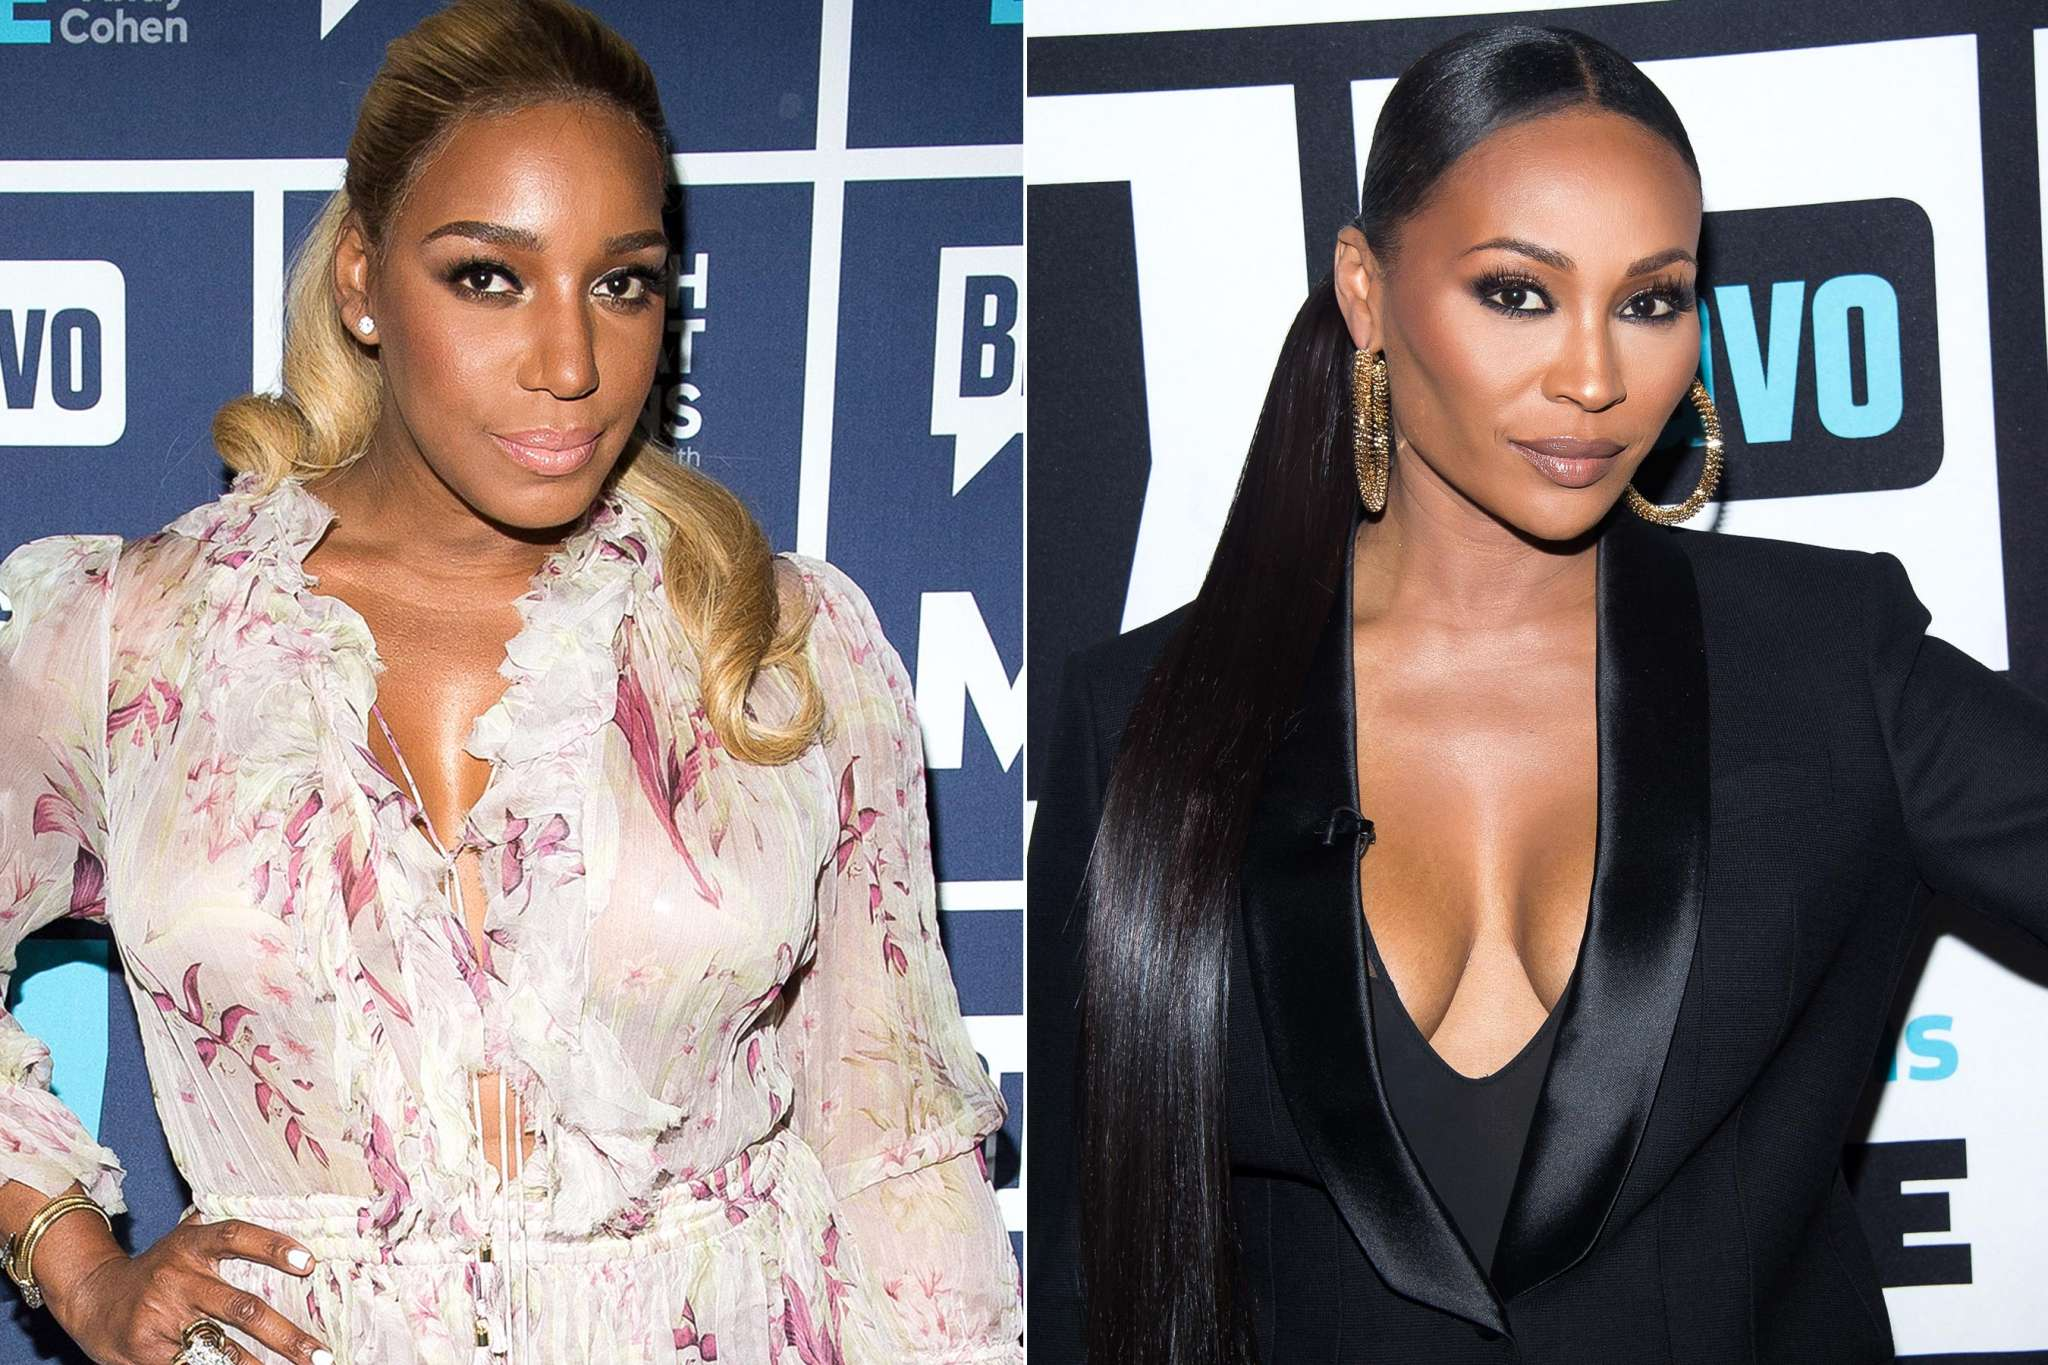 nene-leakes-does-not-consider-cynthia-bailey-a-close-friend-thinks-mike-hill-hashtag-shows-insecurity